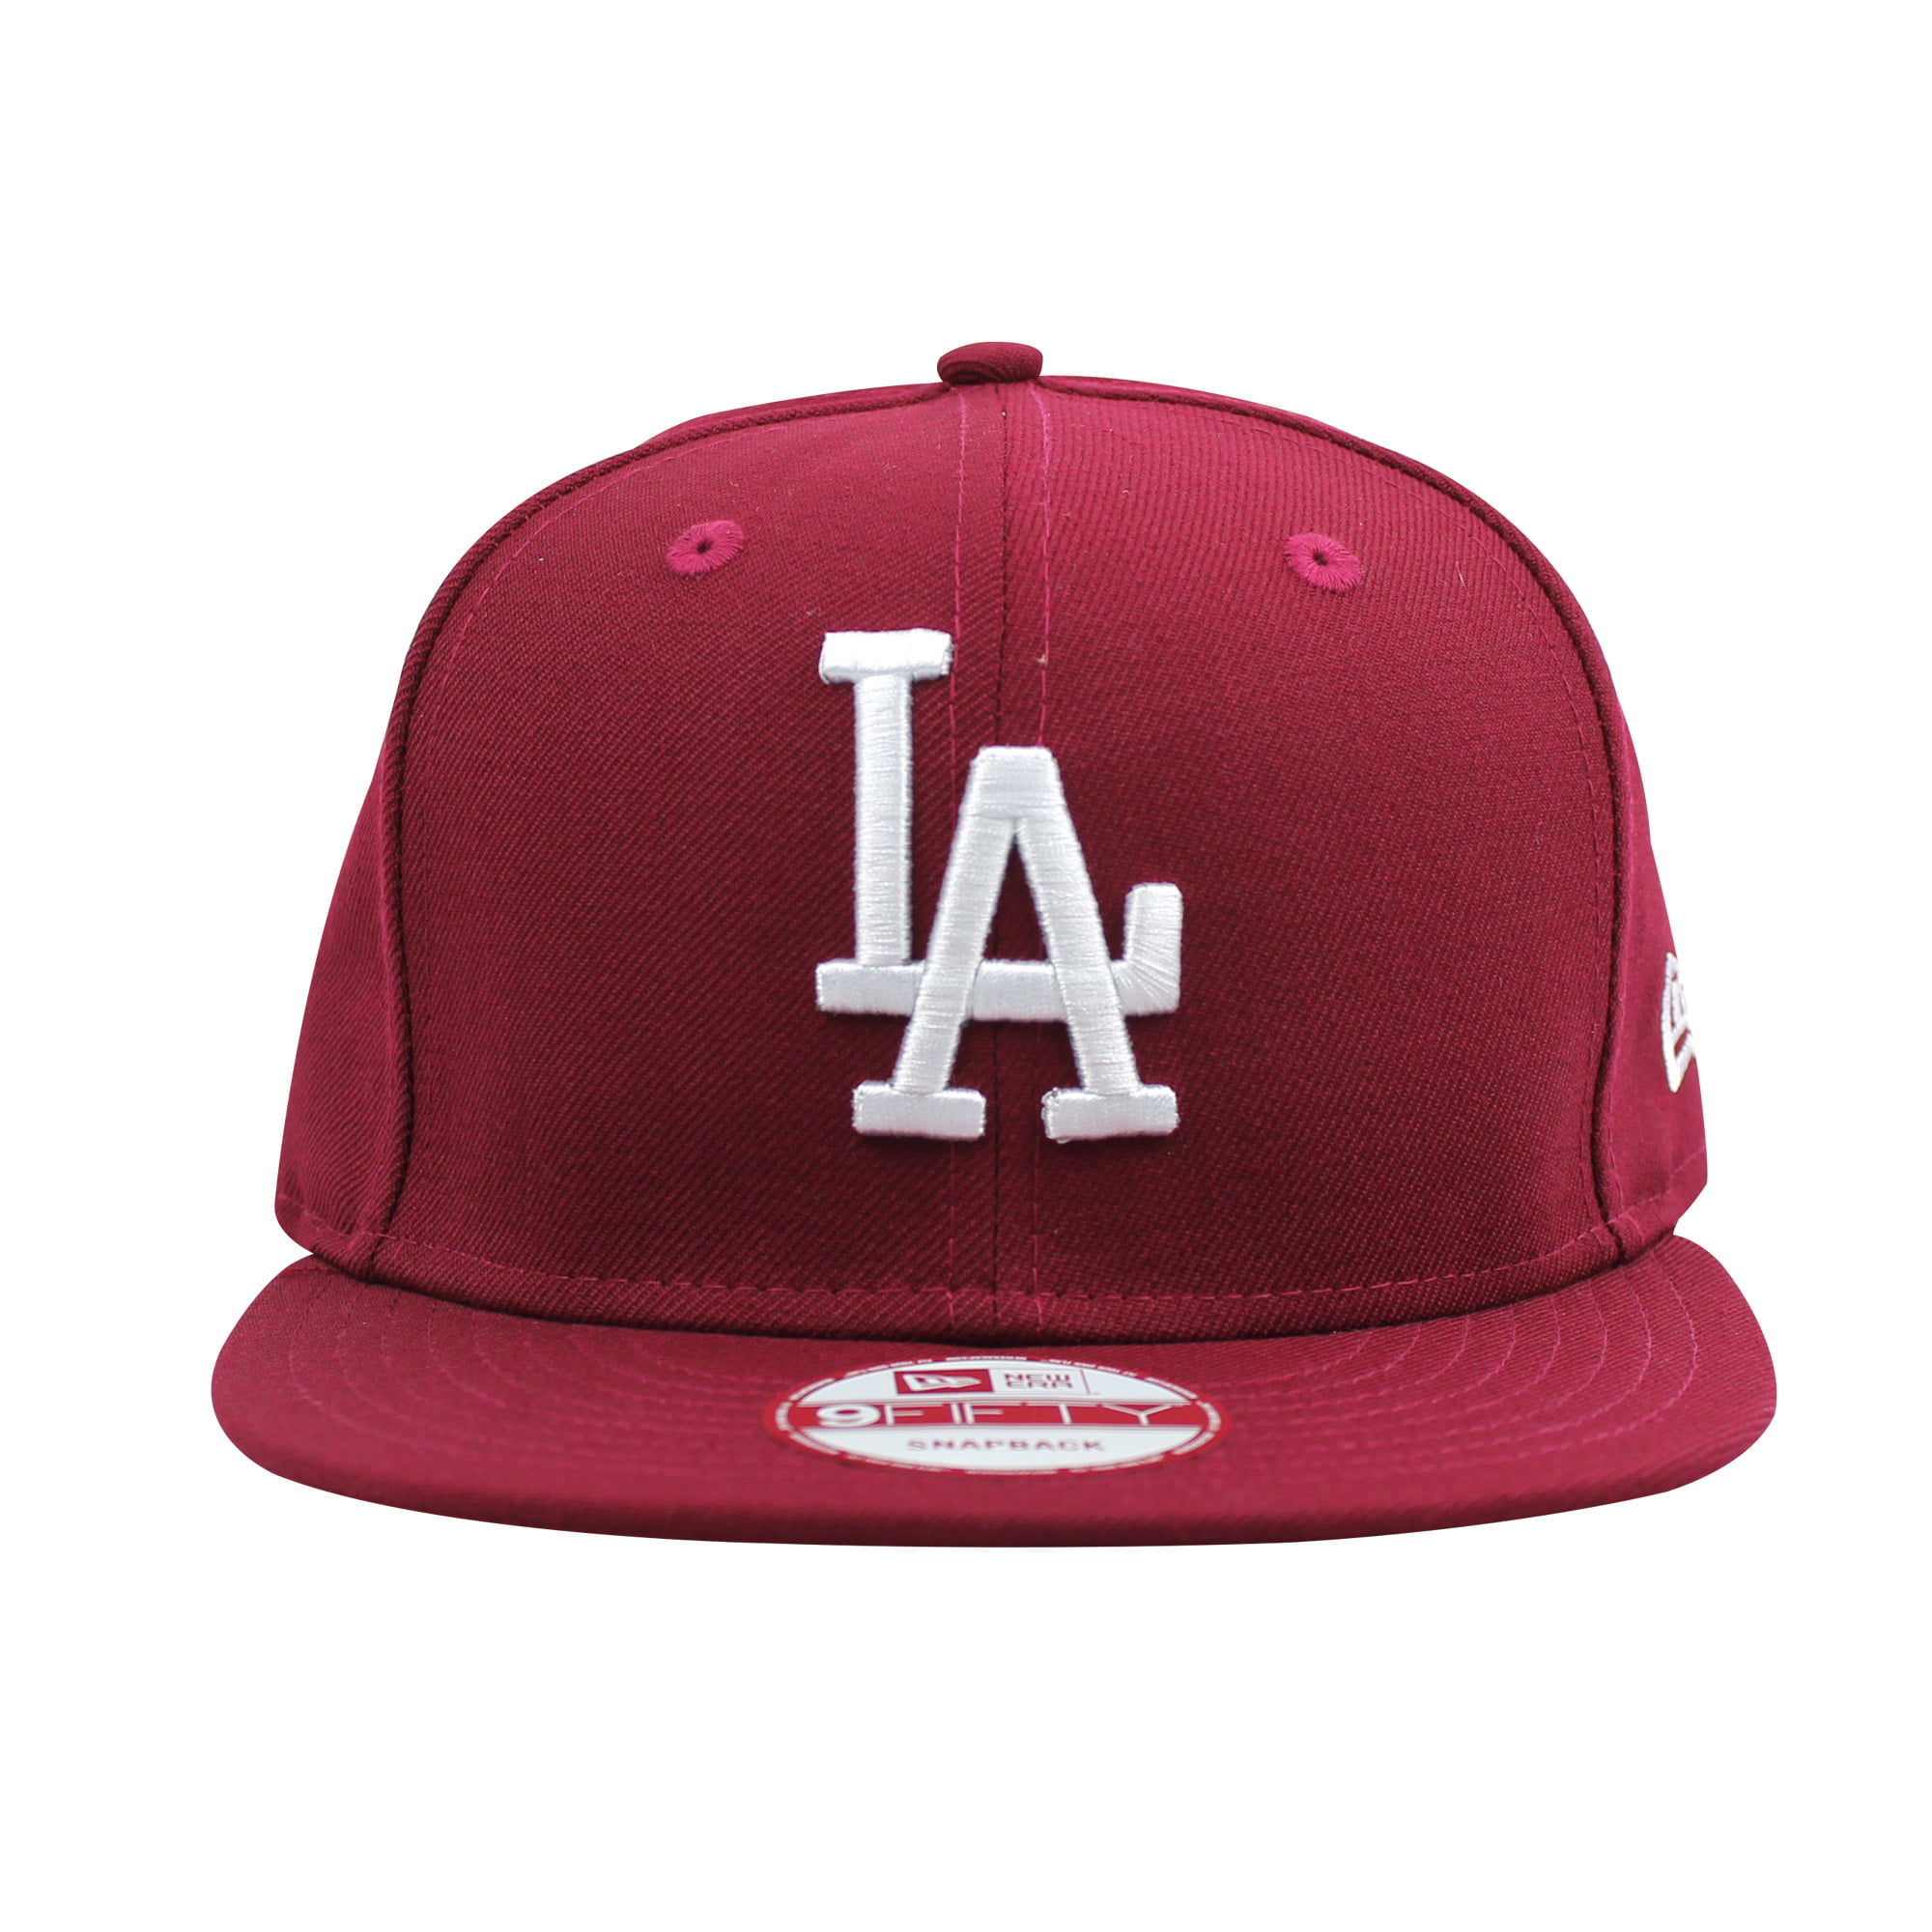 9c4bc57418c27 Bone New Era 9fifty Los Angeles cardinal